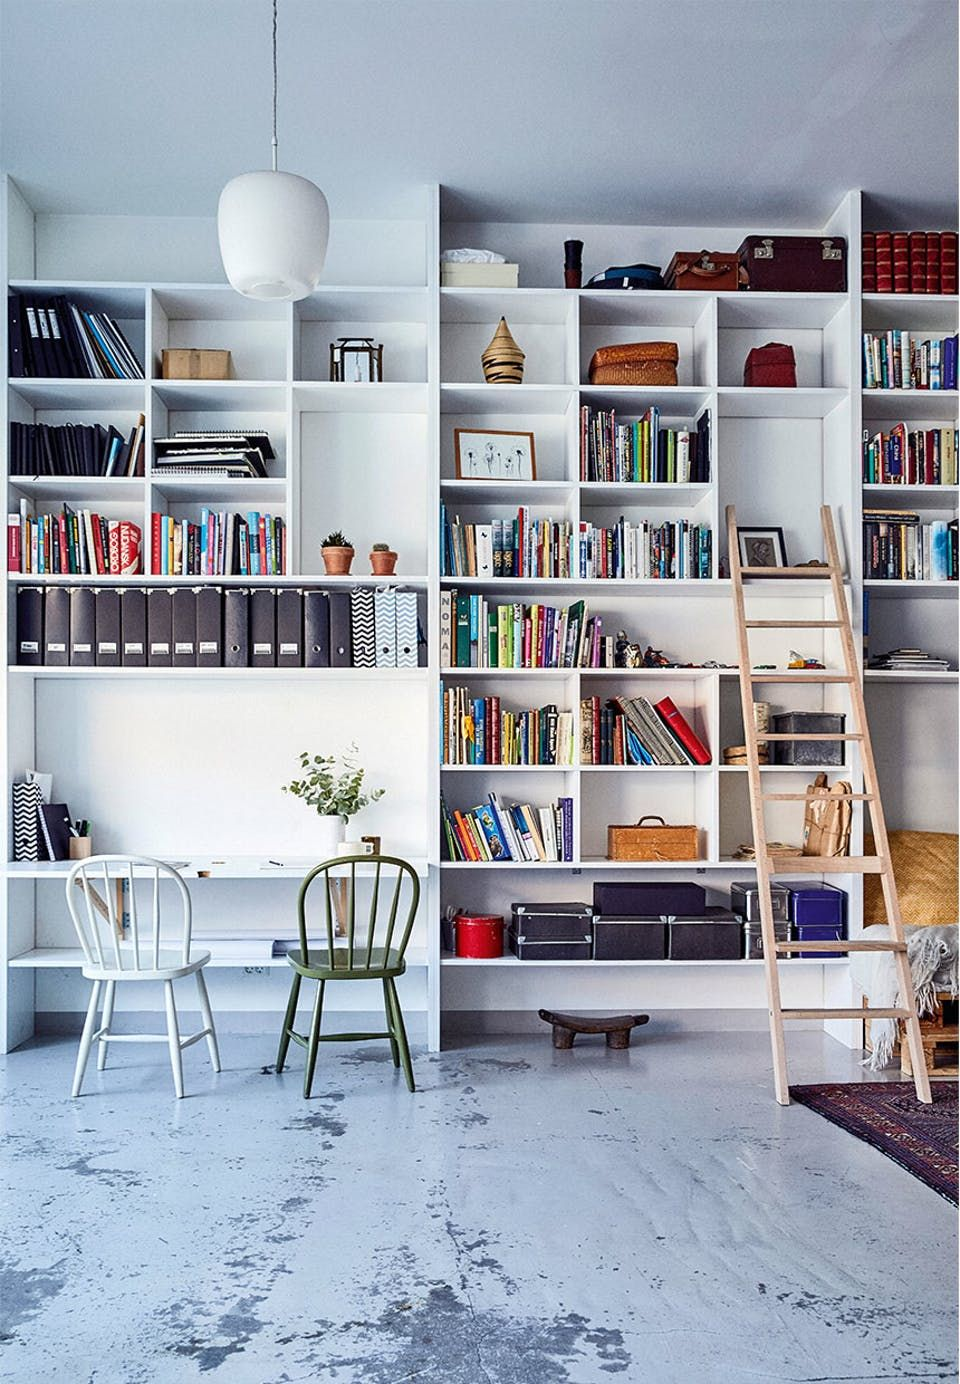 Bookshelves System From Floor To Ceiling A Whole Wall Becomes One Furniture Reach The Top With Small Library Ladder